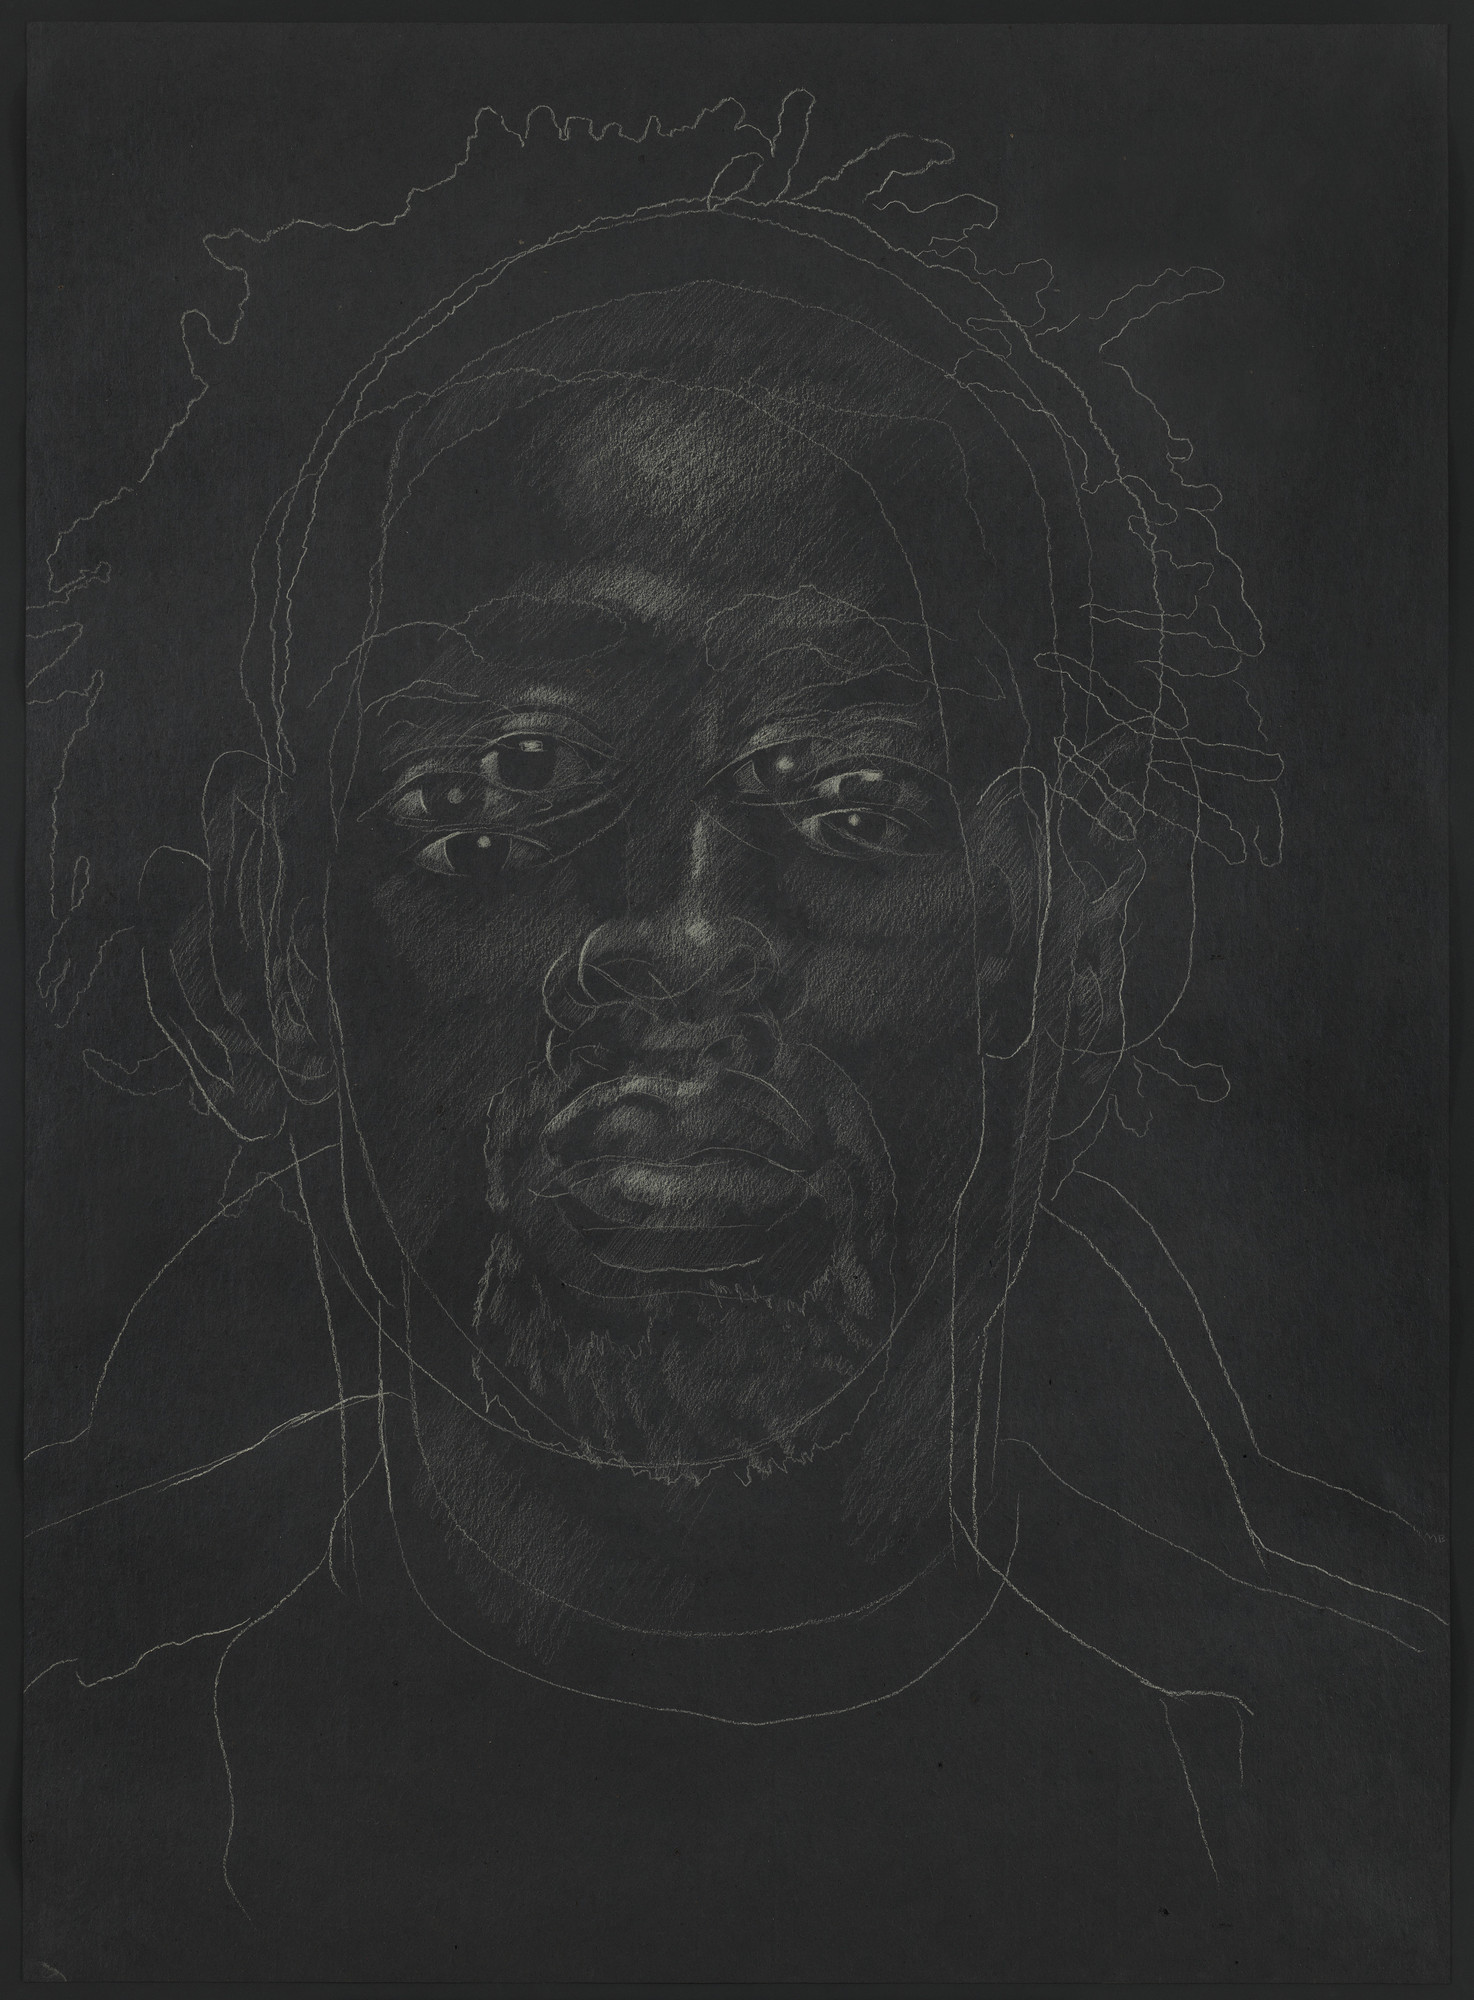 Titus Kaphar. The Jerome Project (Asphalt and Chalk) V. 2014